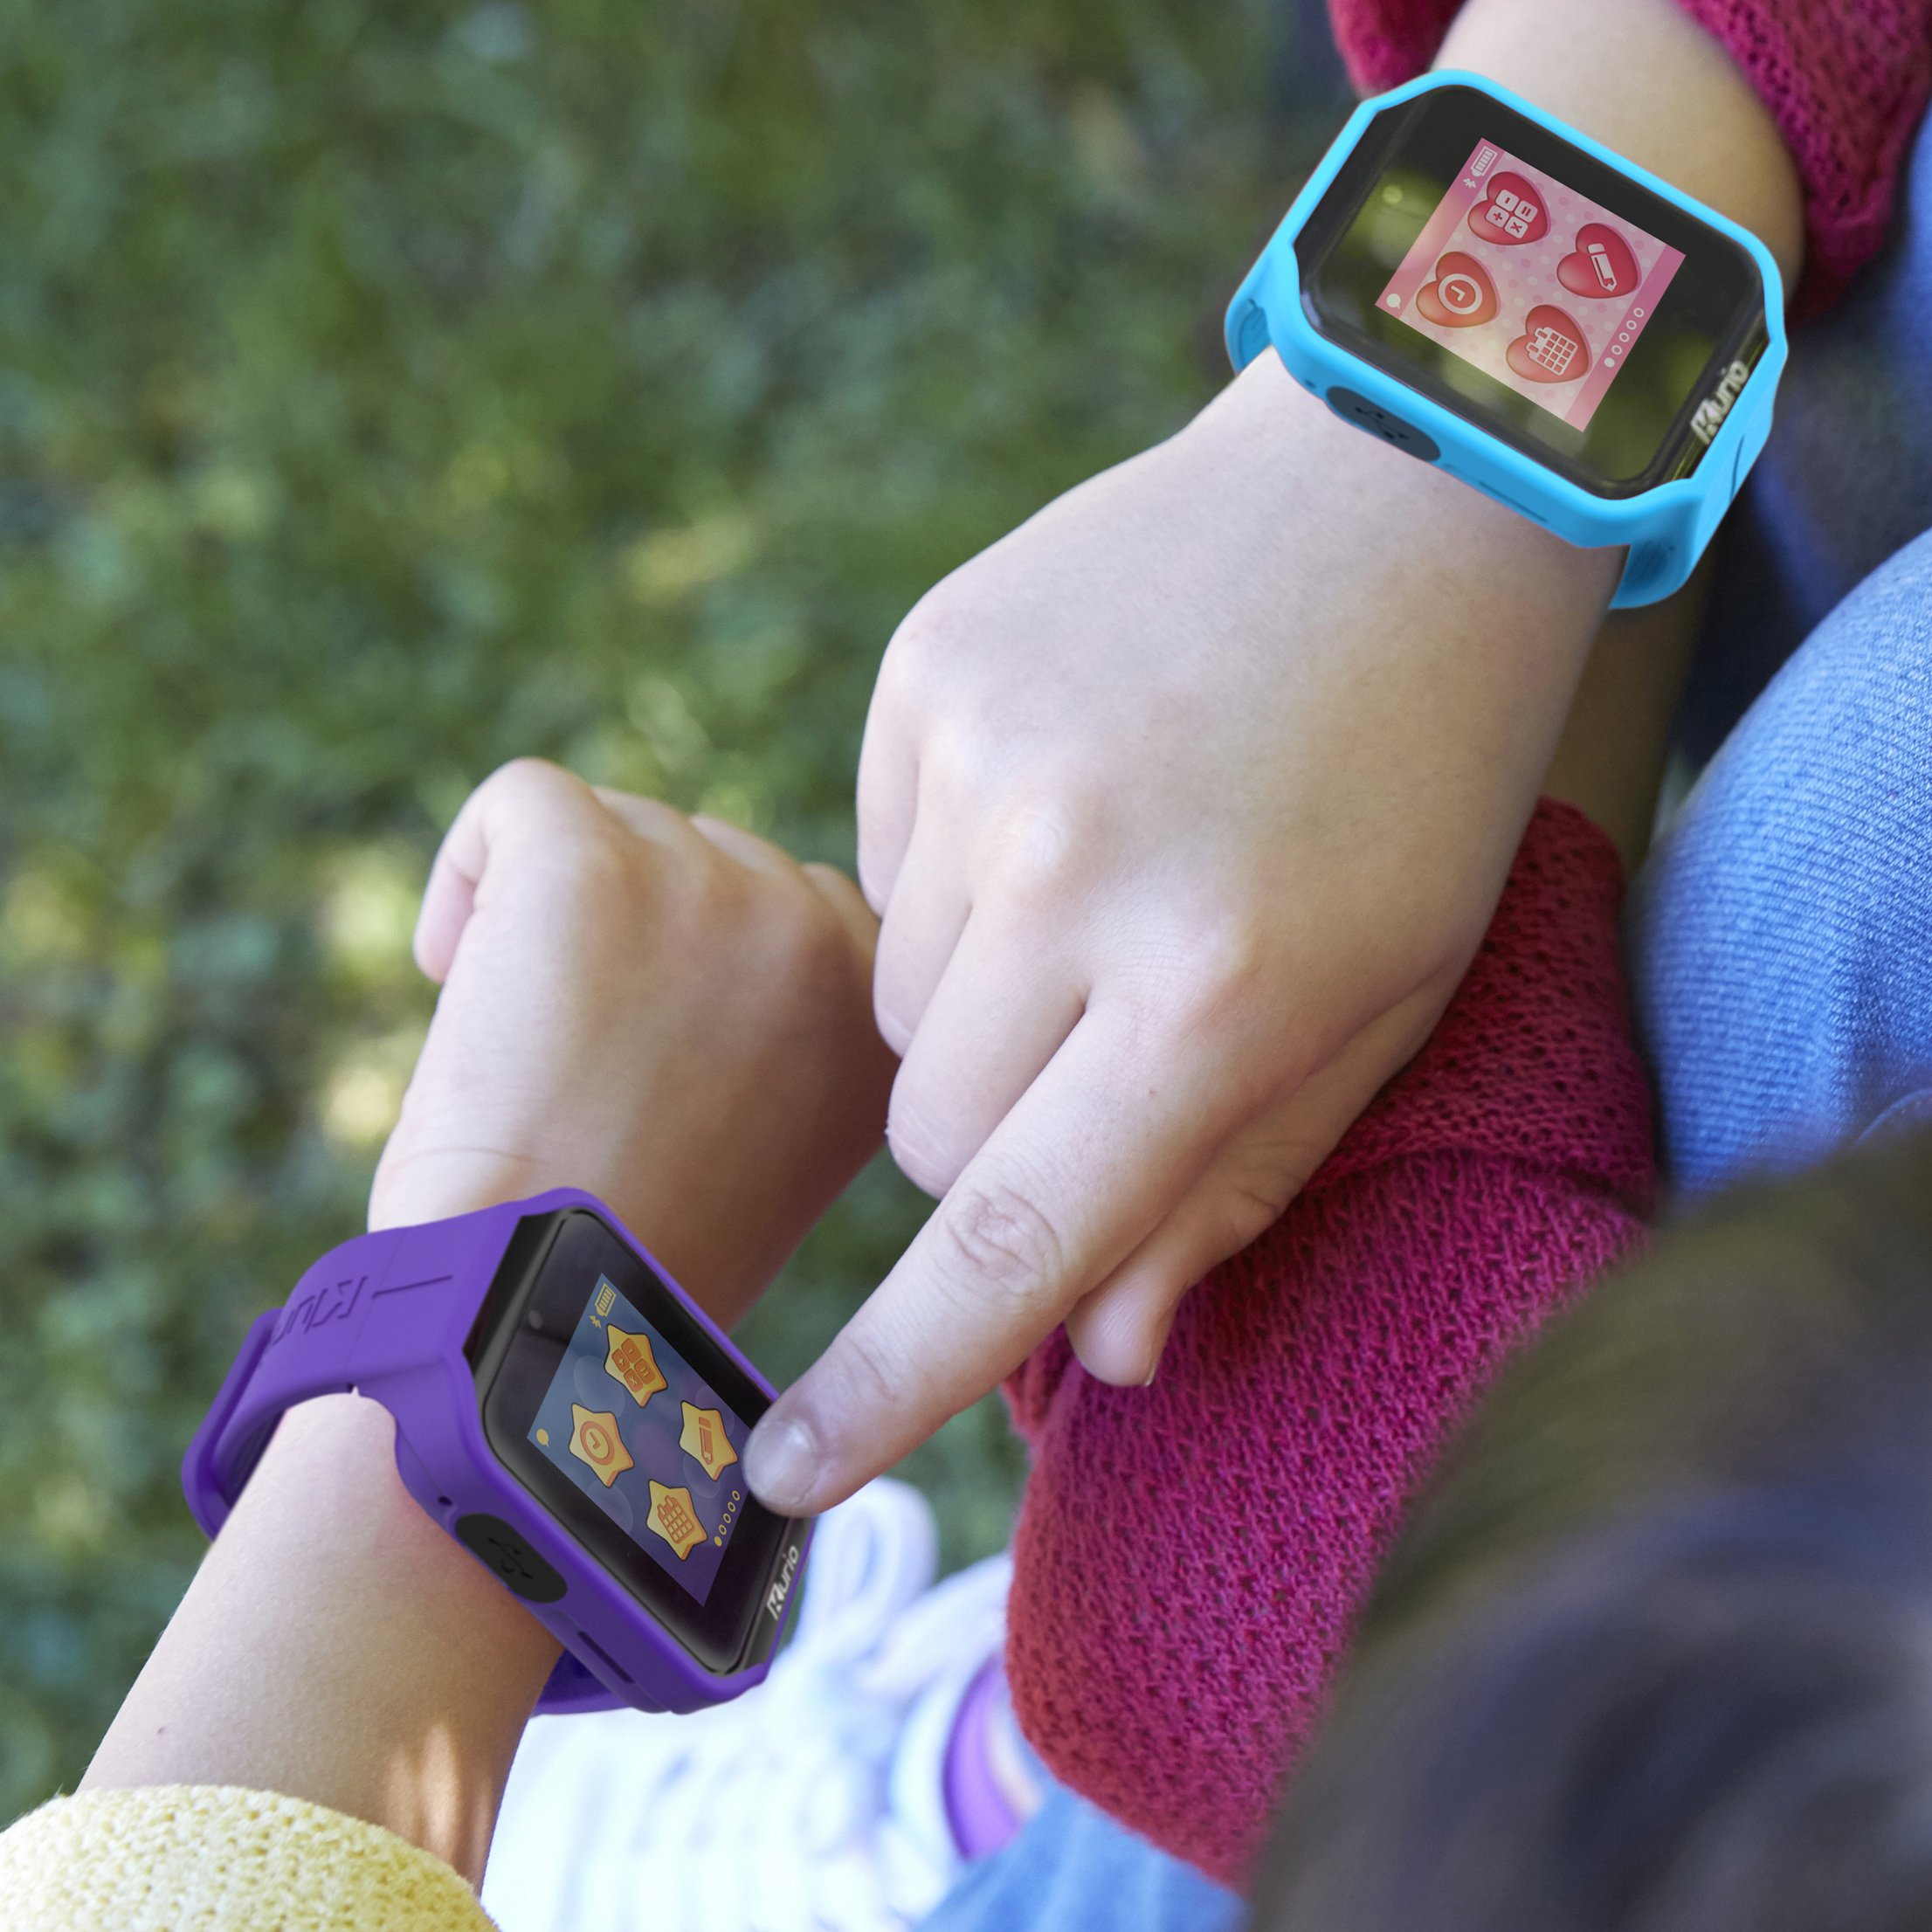 Kurio Watch 2.0+ The Ultimate Smartwatch Built for Kids with 2 Bands, Blue and Color Change by KD Interactive (Image #3)